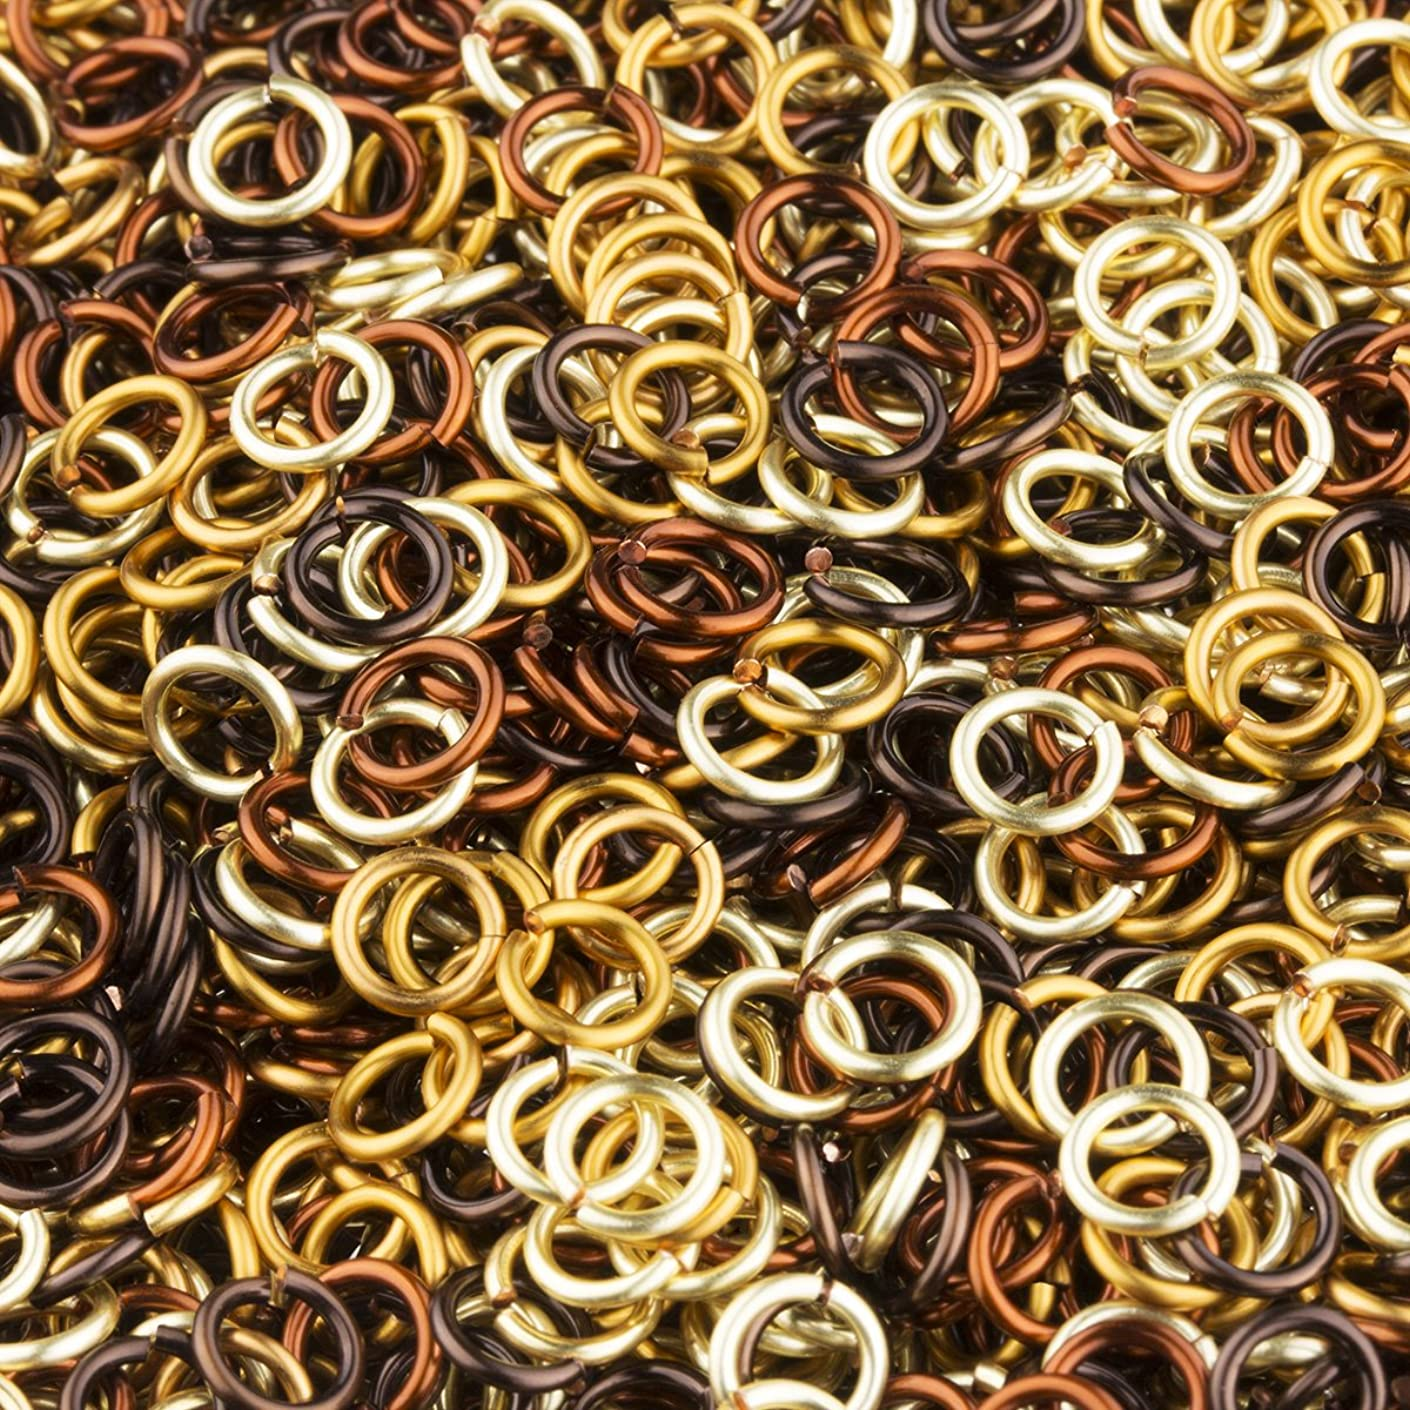 Weave Got Maille 18 Gauge Enameled Copper Jump Ring, 3.5mm, Treasure Mix